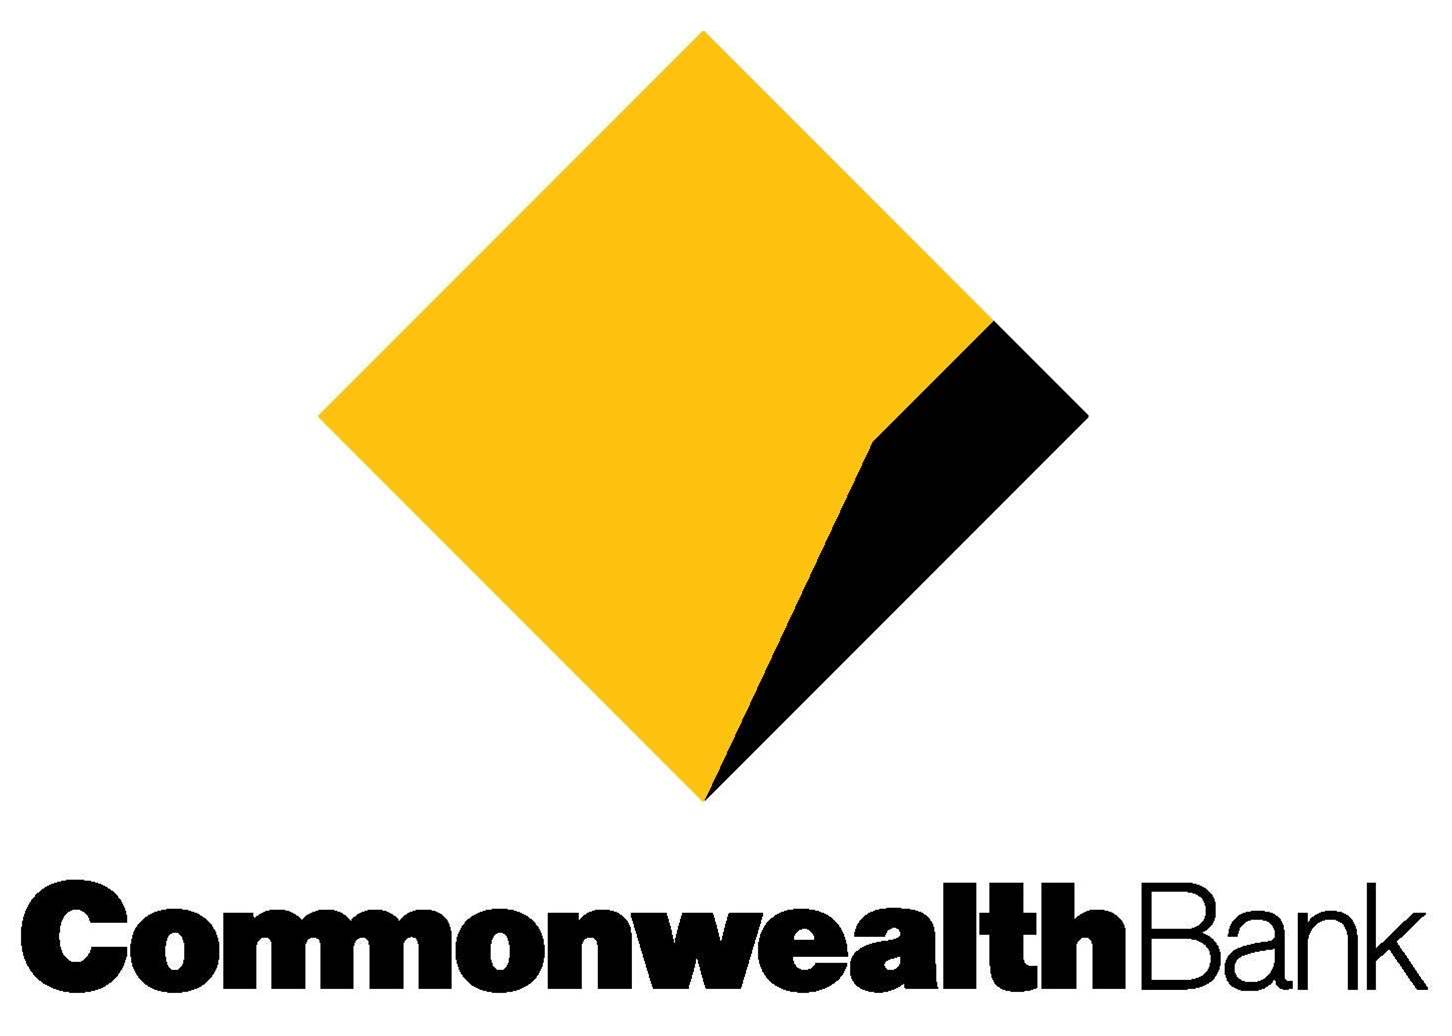 Update: CBA NetBank back online after major outage